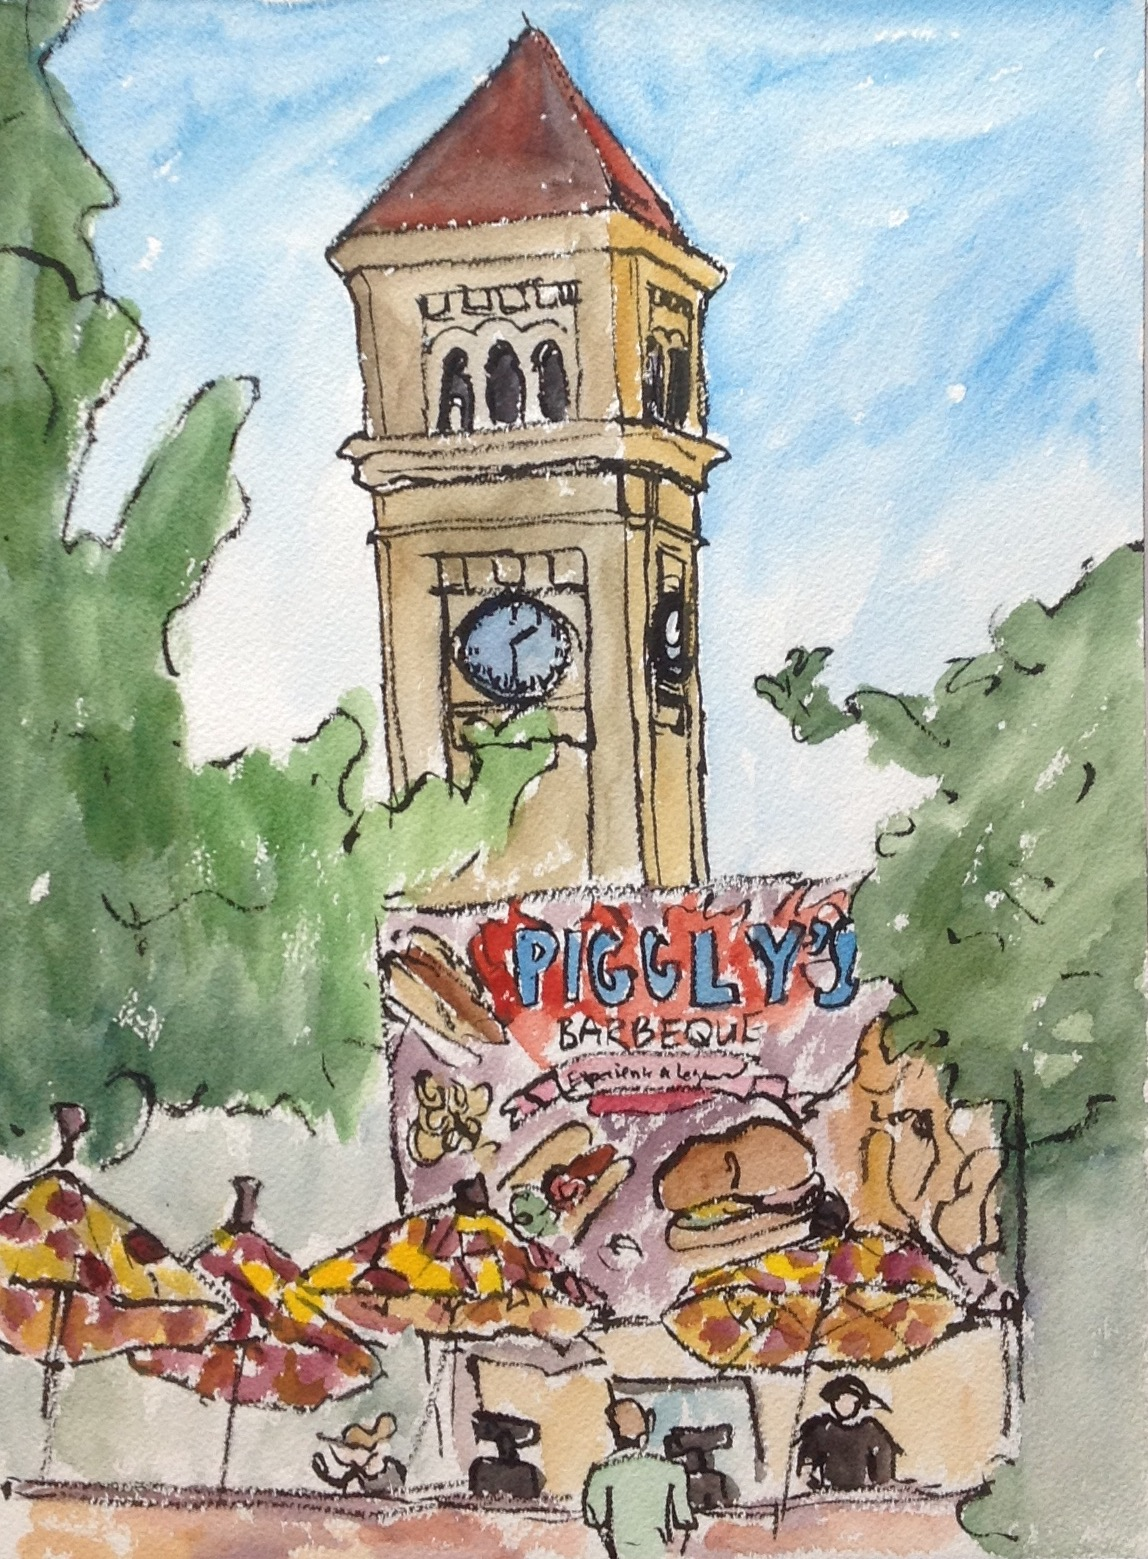 Piggly's Barbeque had meat spinning on skewers and the smokey smell of BBQ filled the air as I sketched the Clock Tower overlooking all the activities.